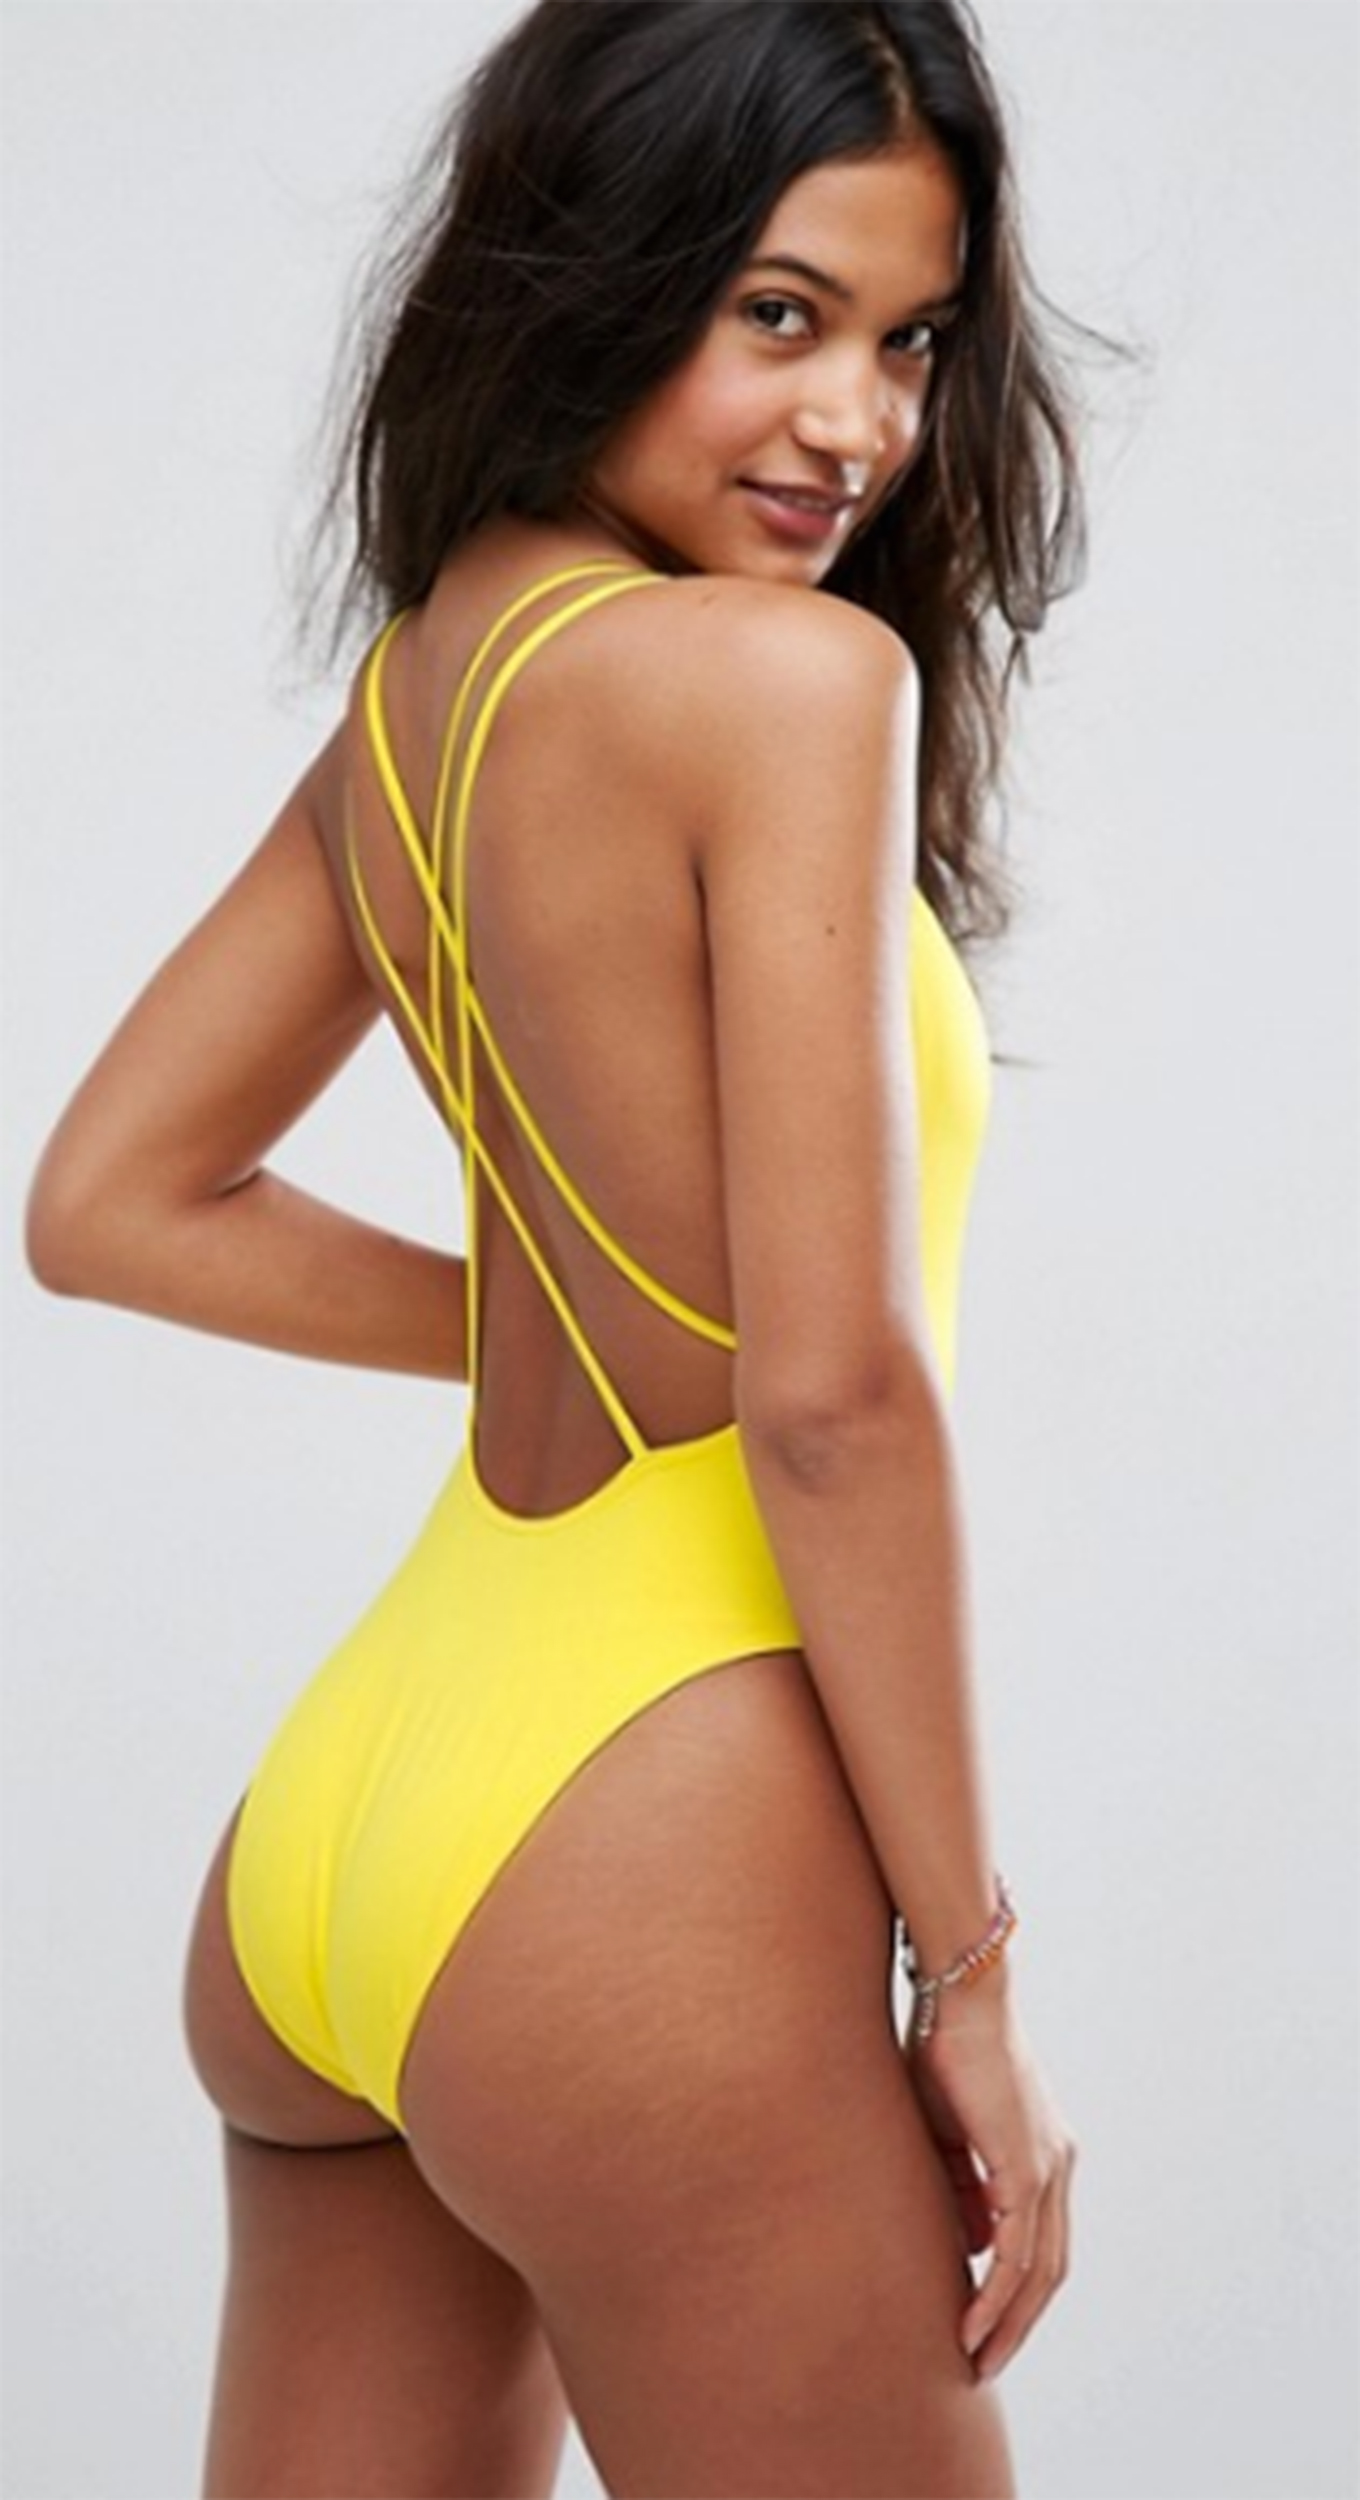 Girls in bikinis with stretch marks Asos Swimsuit Ads Show Unedited Models With Stretch Marks